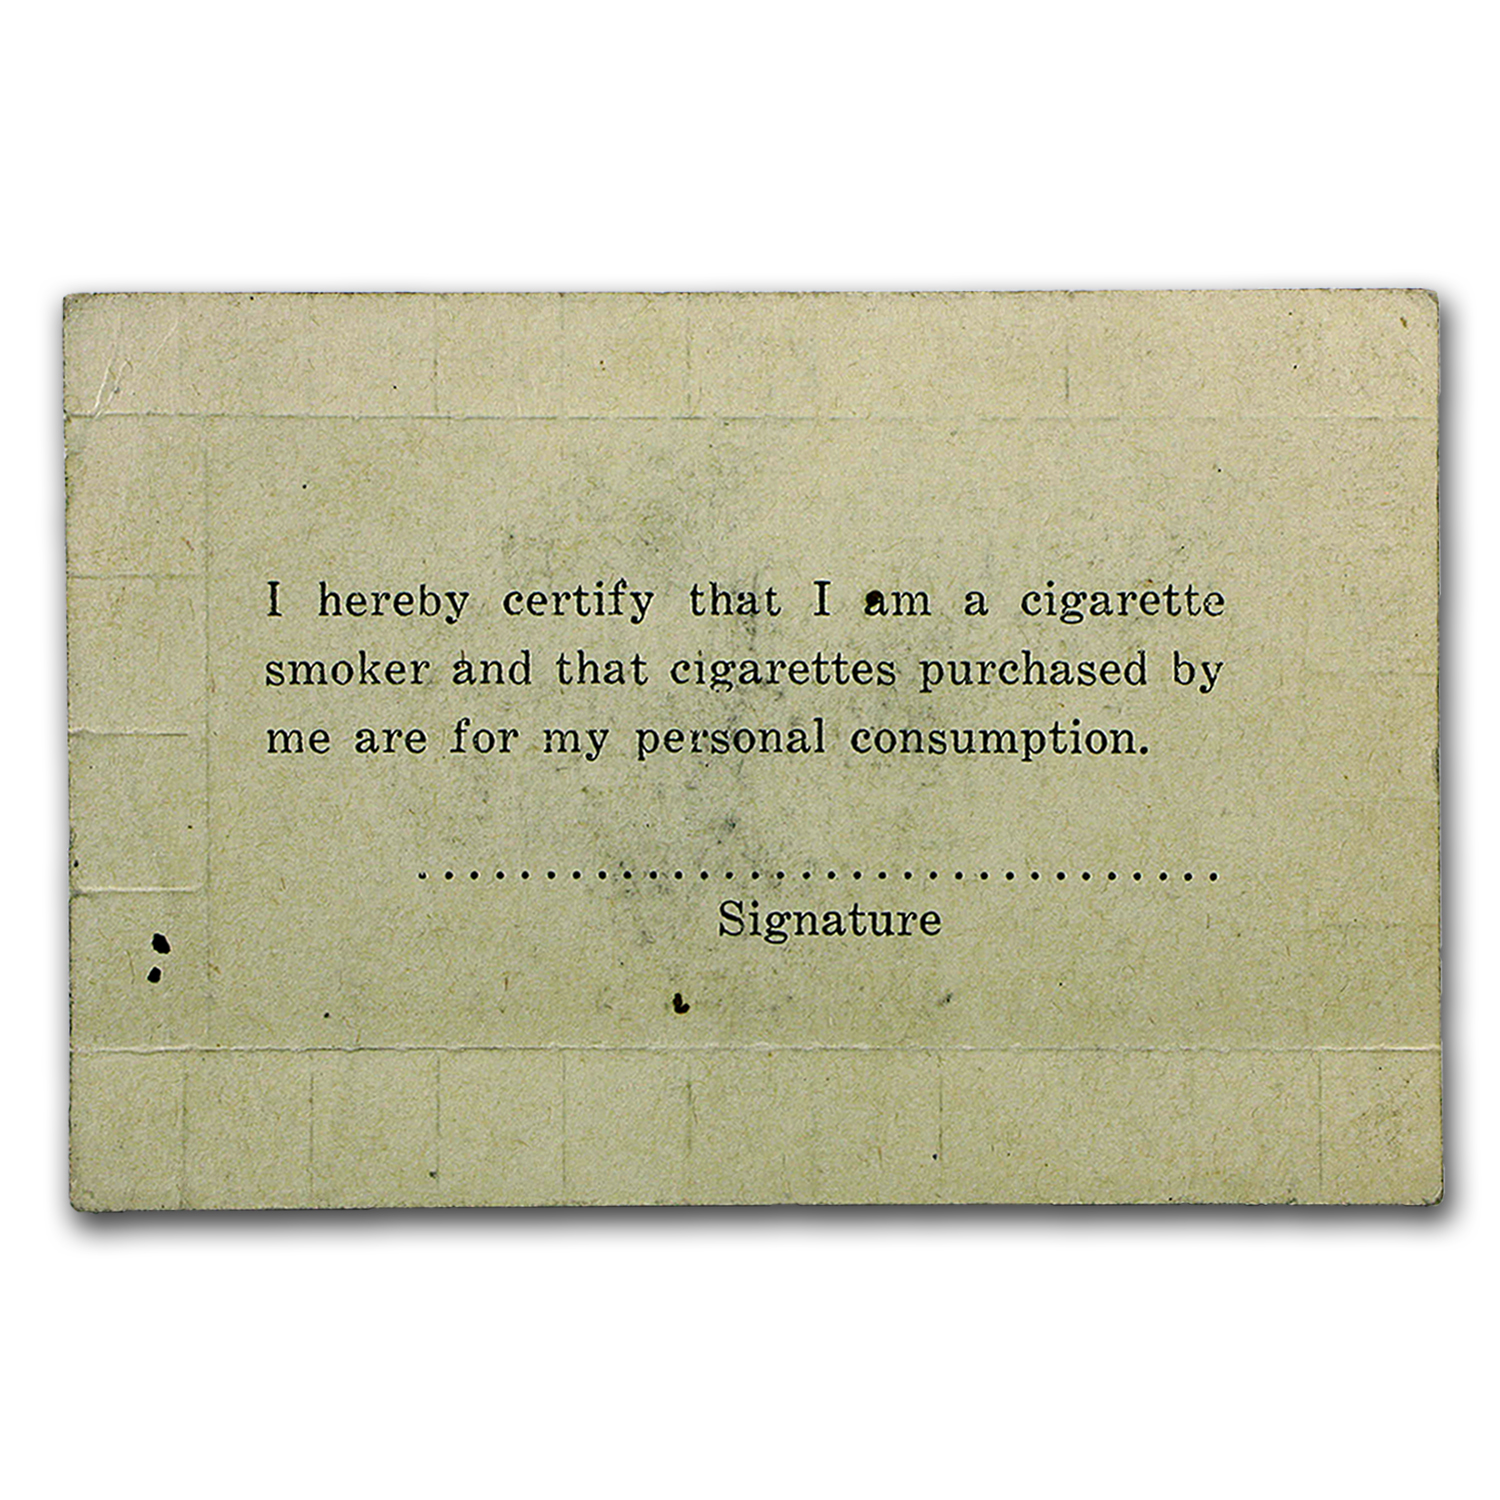 Circa World War II - Cigarette Rationing Card